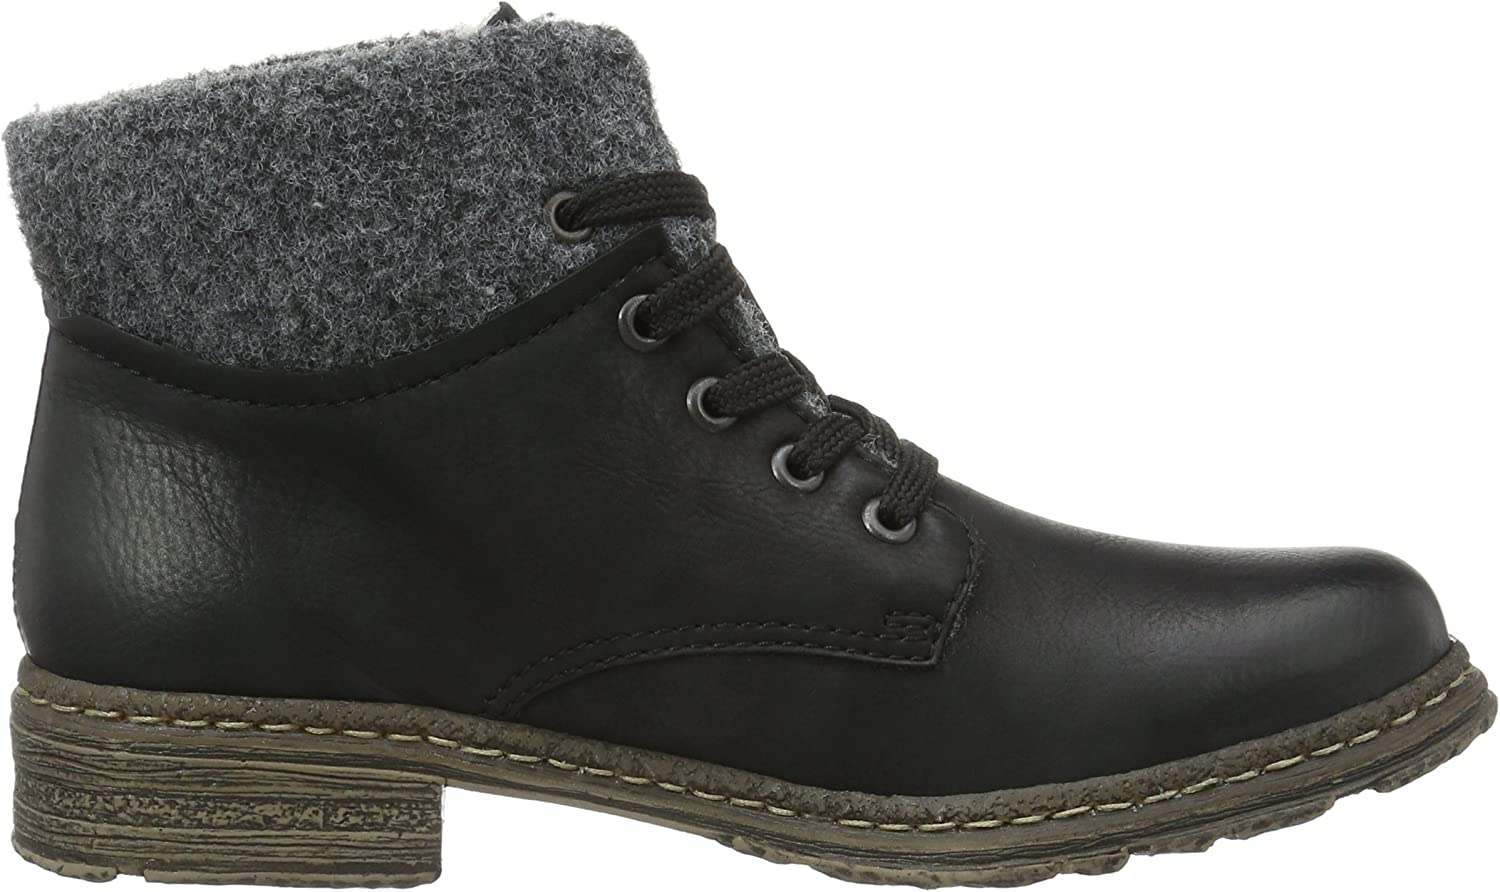 Rieker 74234, Women's Ankle Boots | Ankle boots, Boots